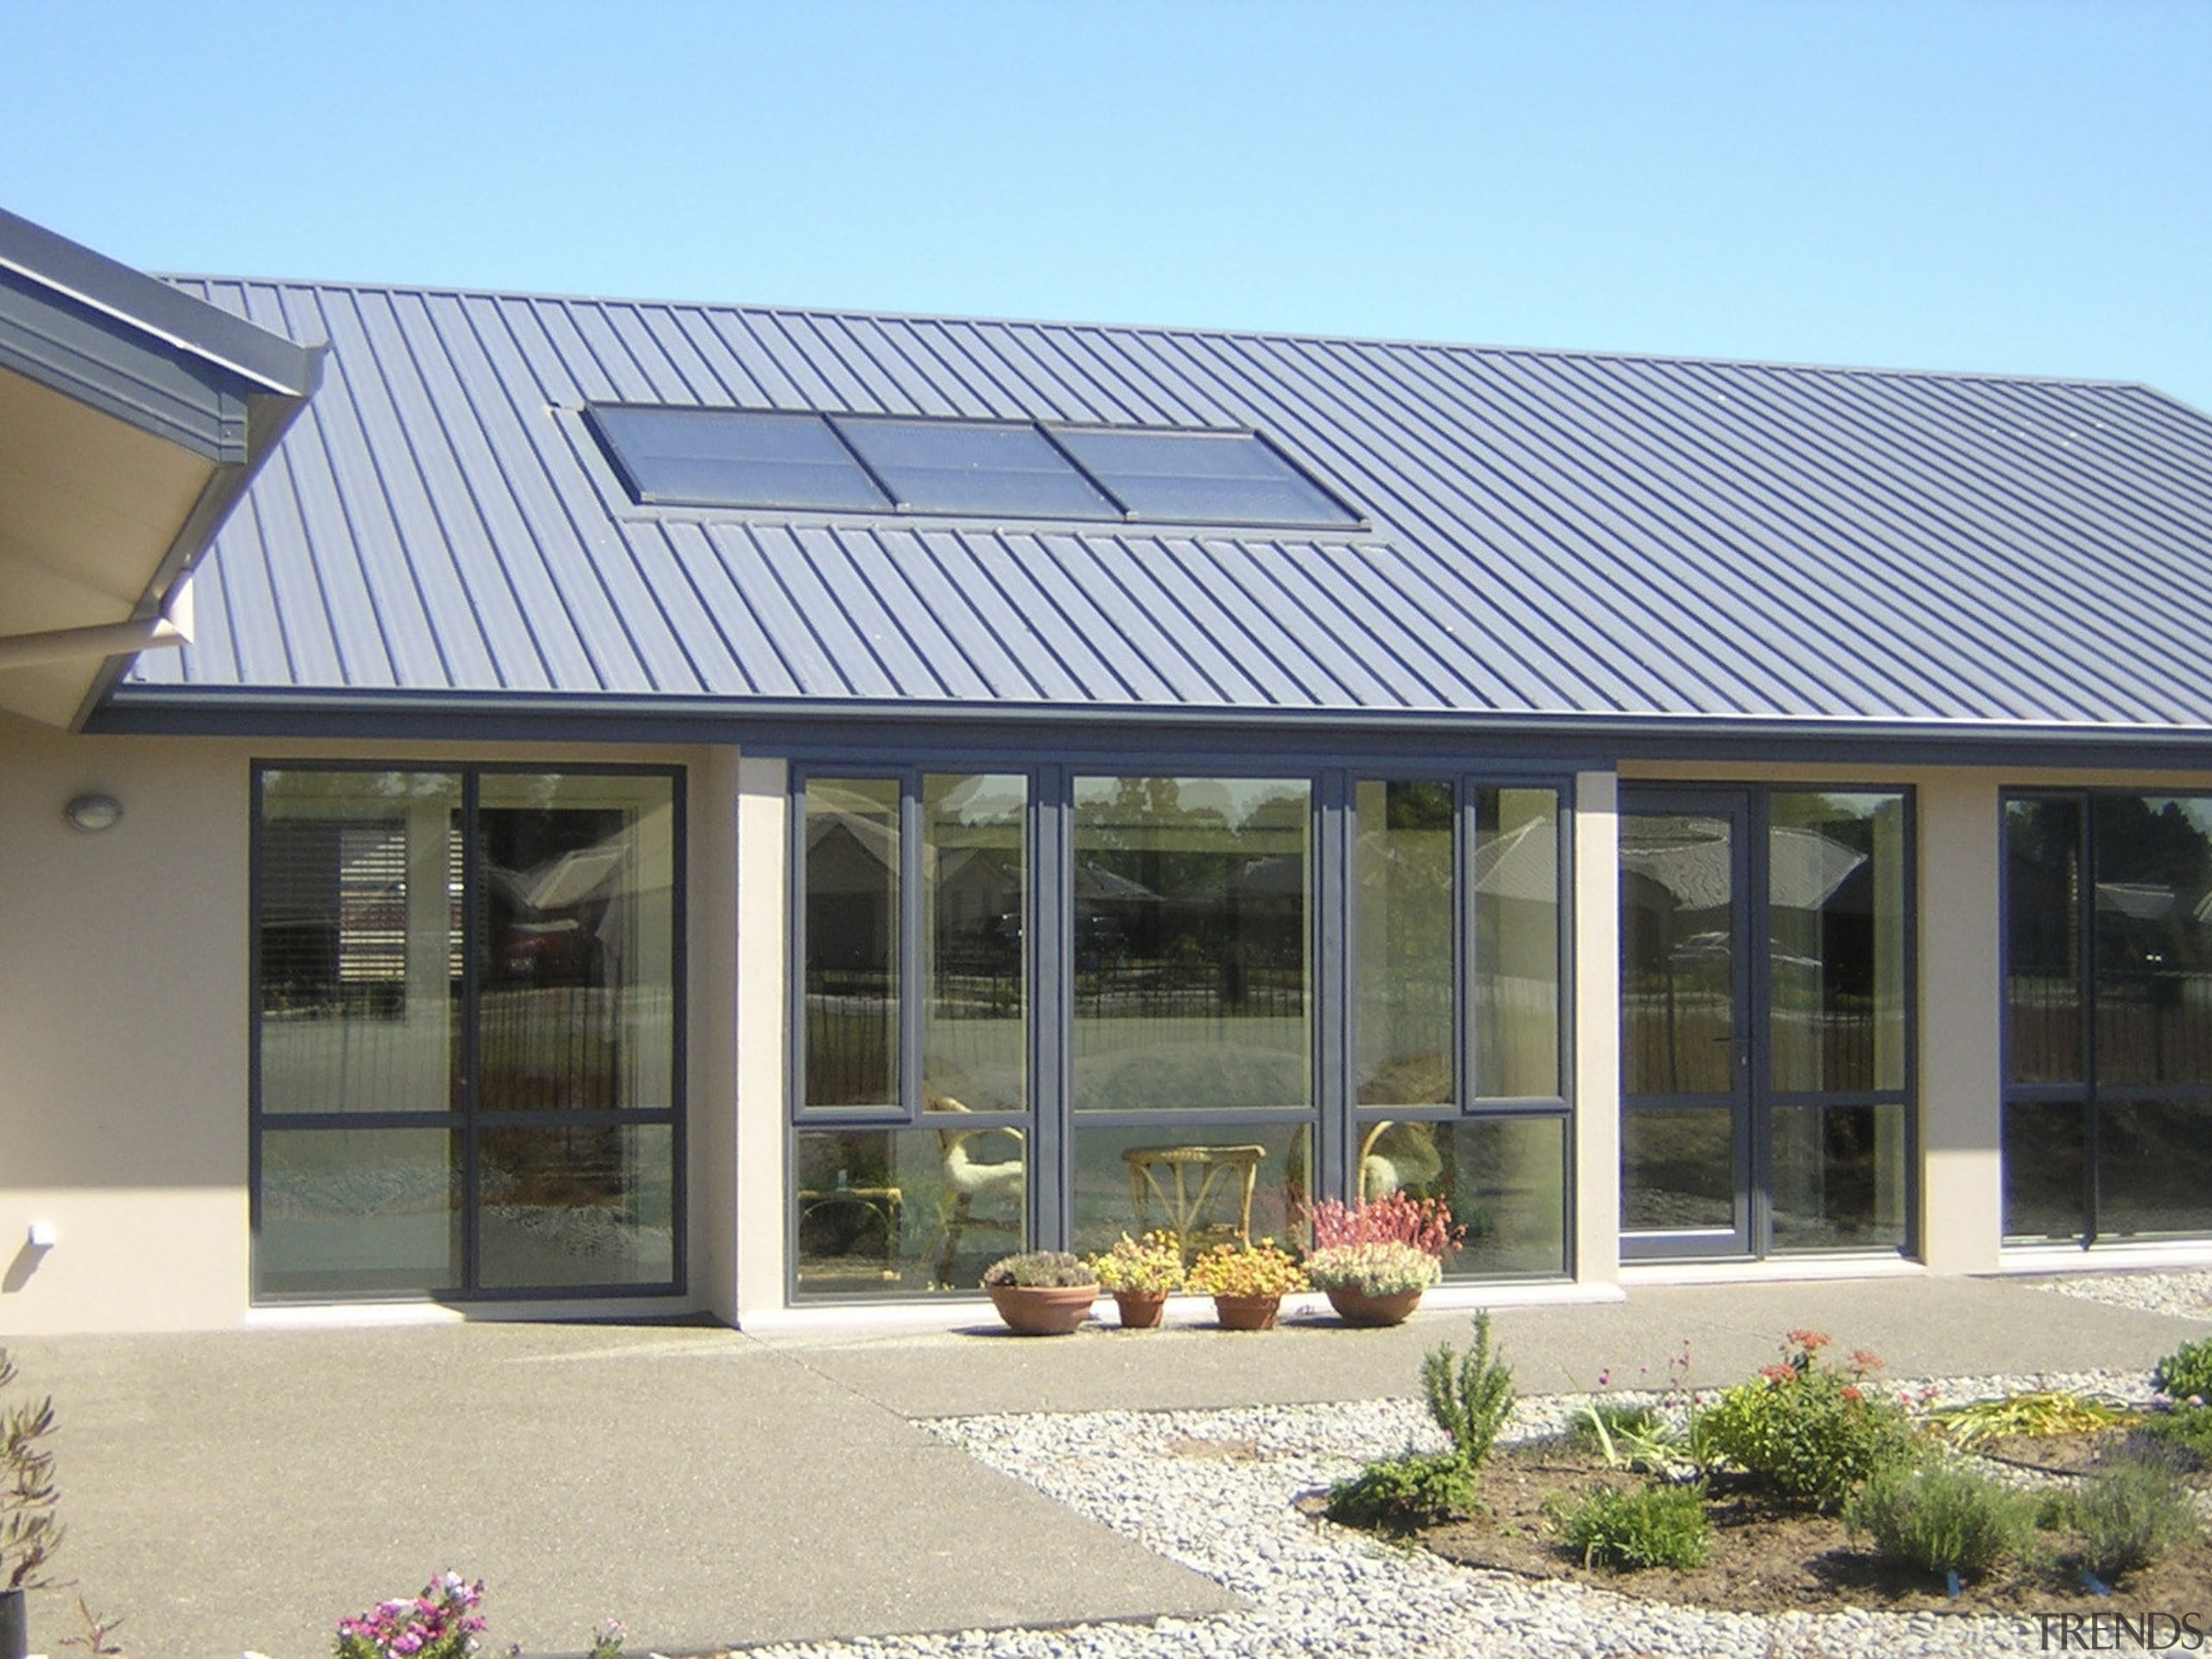 This large home efficiently uses solar energy thanks daylighting, facade, home, house, orangery, real estate, roof, window, gray